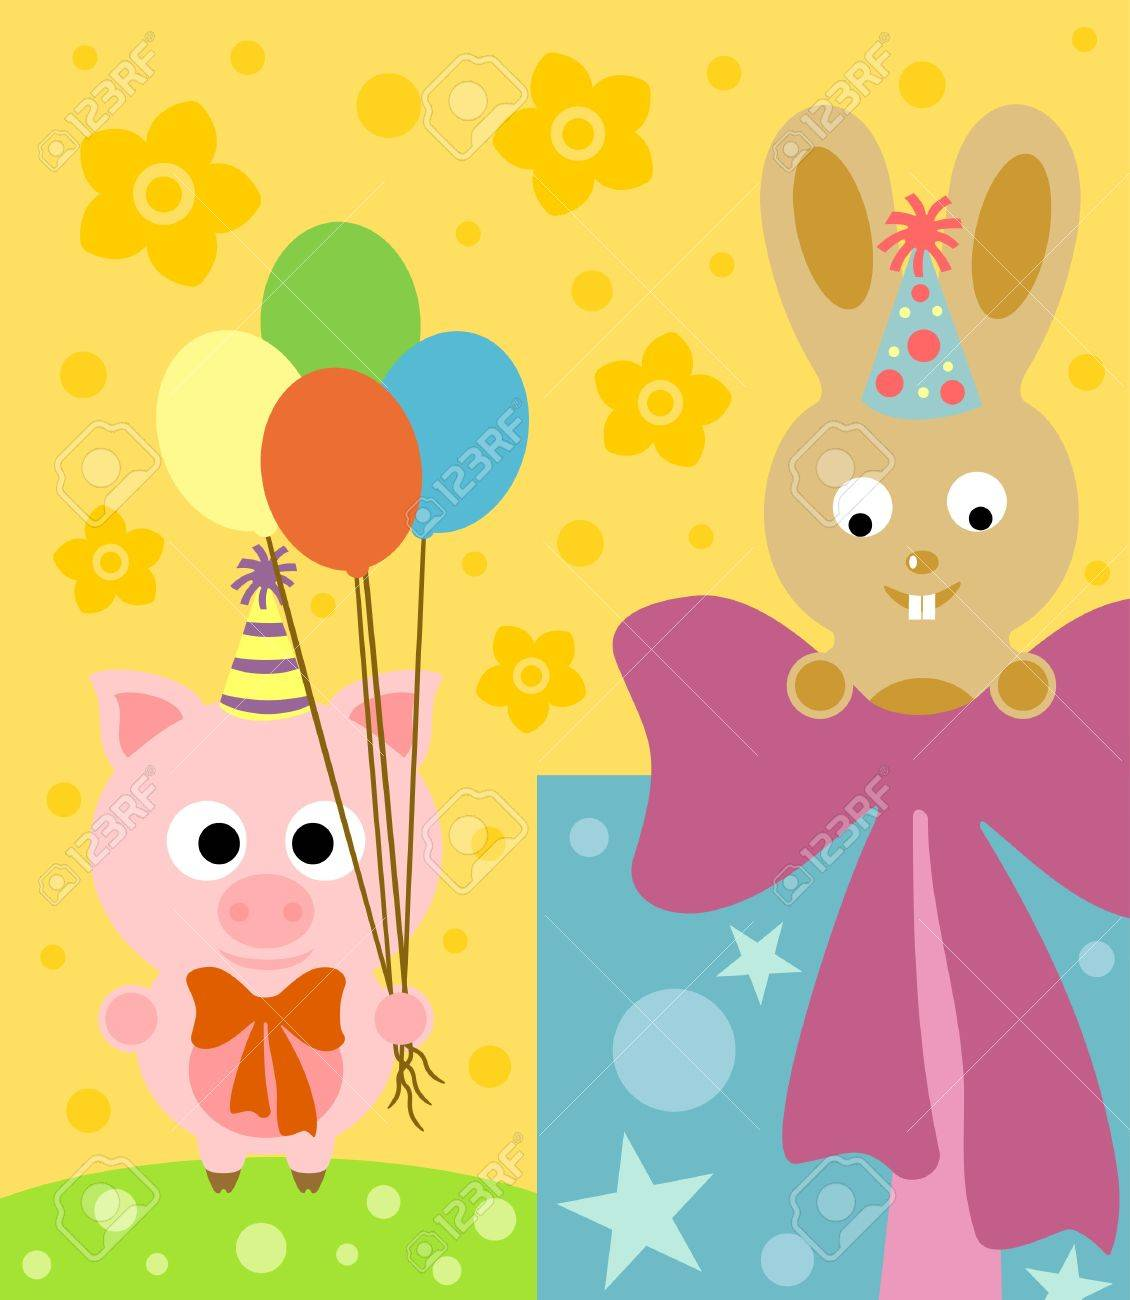 cartoon background with funny pig and rabbit royalty free cliparts